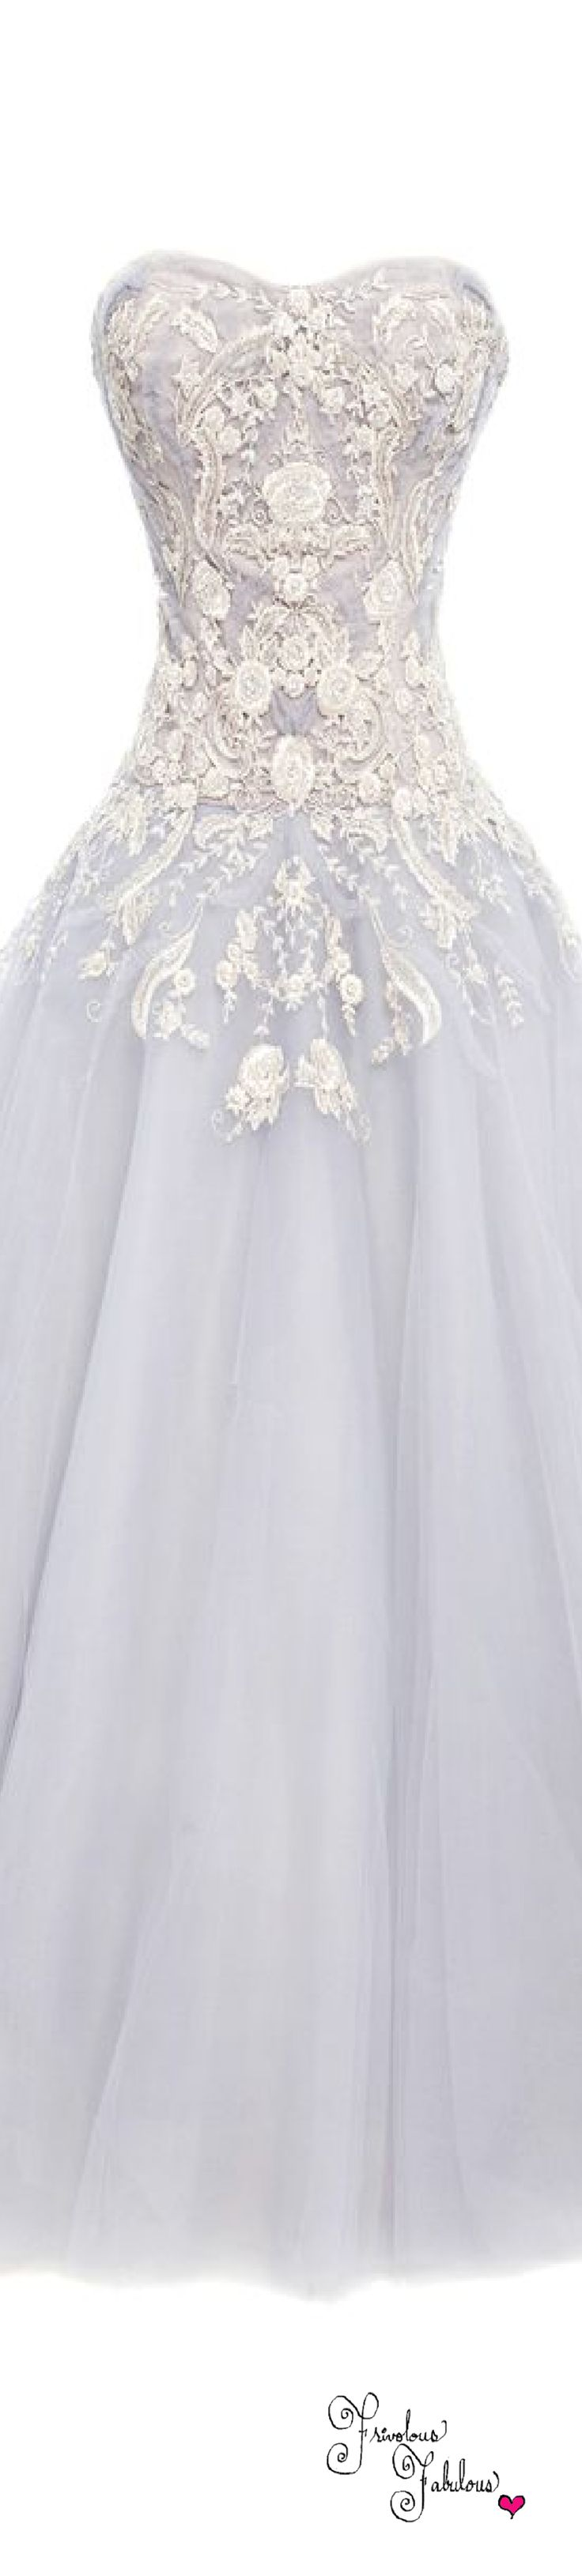 Frivolous Fabulous - Marchesa Spring Summer 2016 Wedding Gown Inspiration